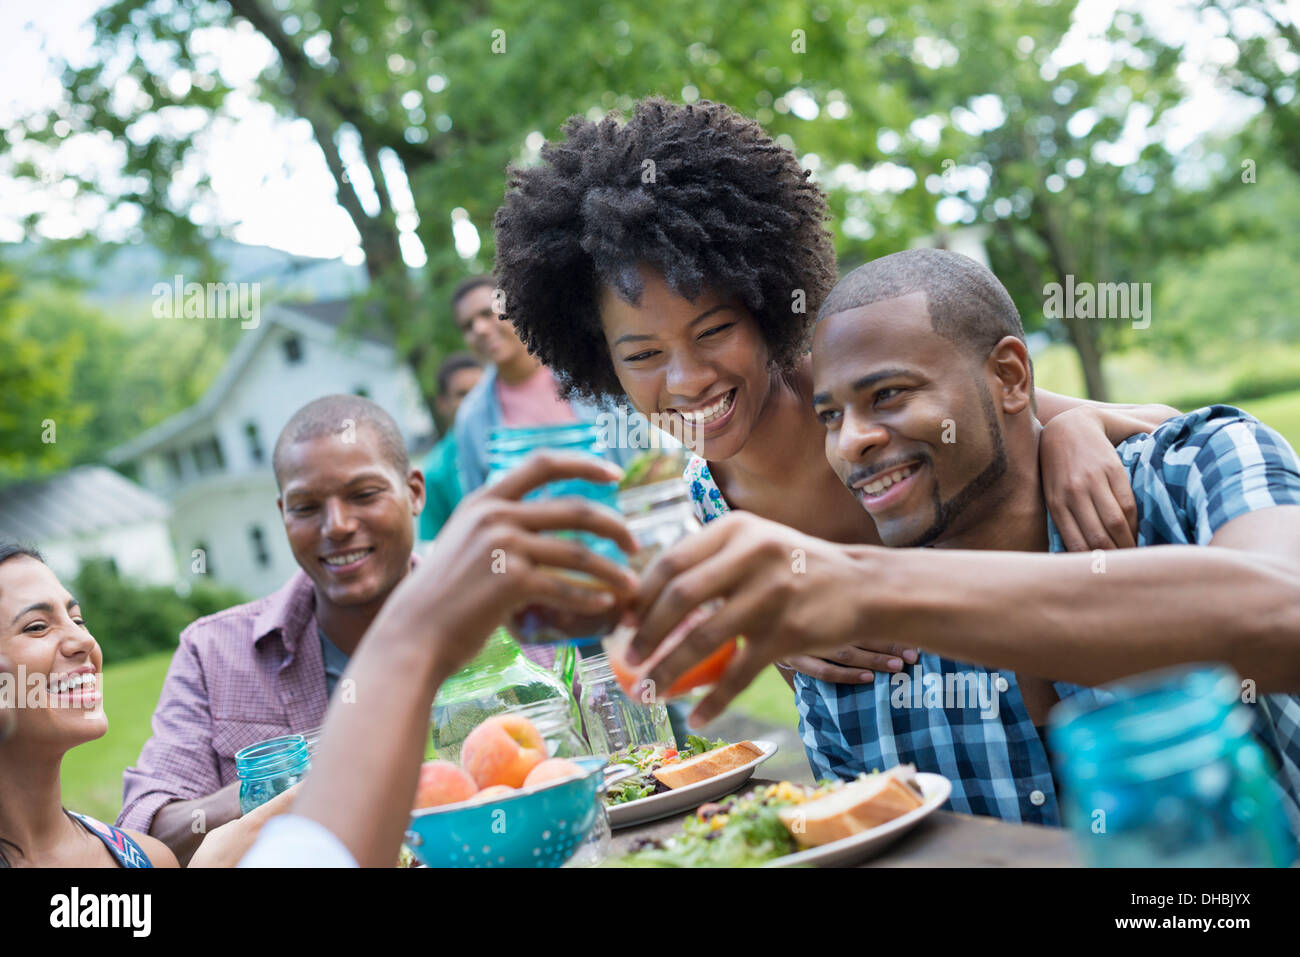 A group of adults and young people at a meal in the garden of a farmhouse. Passing plates and raising glasses. - Stock Image